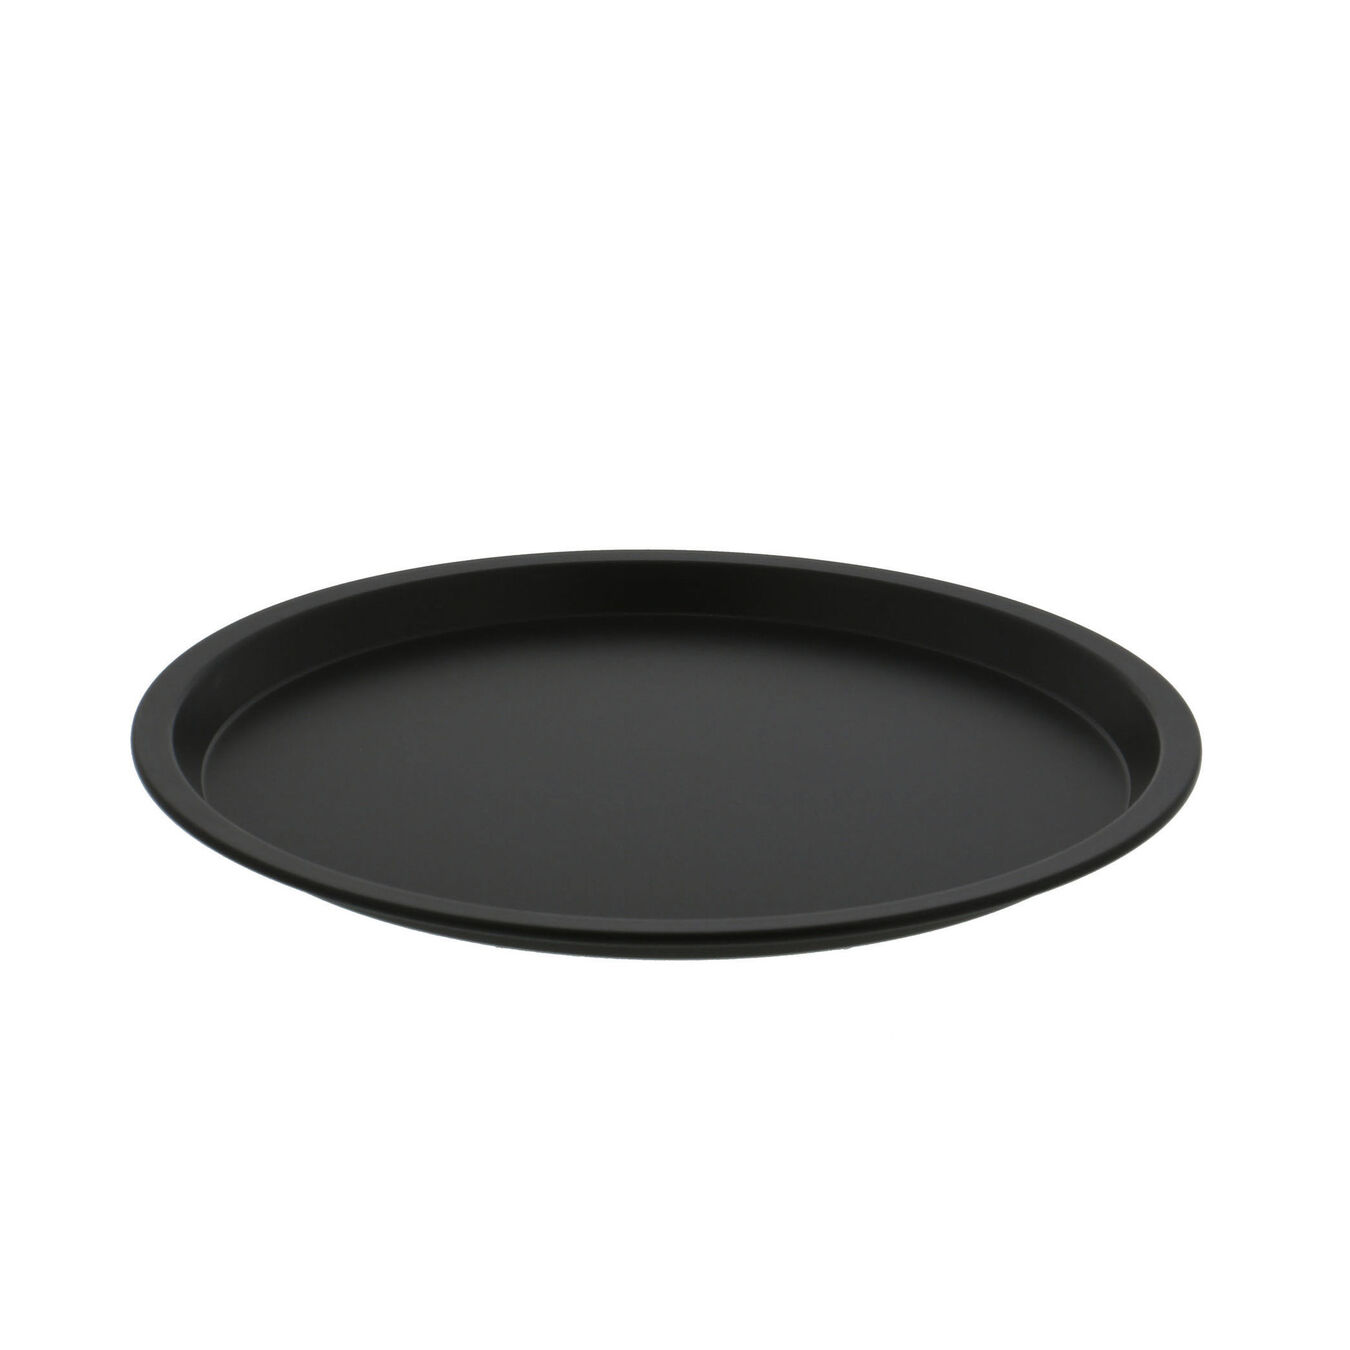 12.5-inch Pizza Pan,,large 1